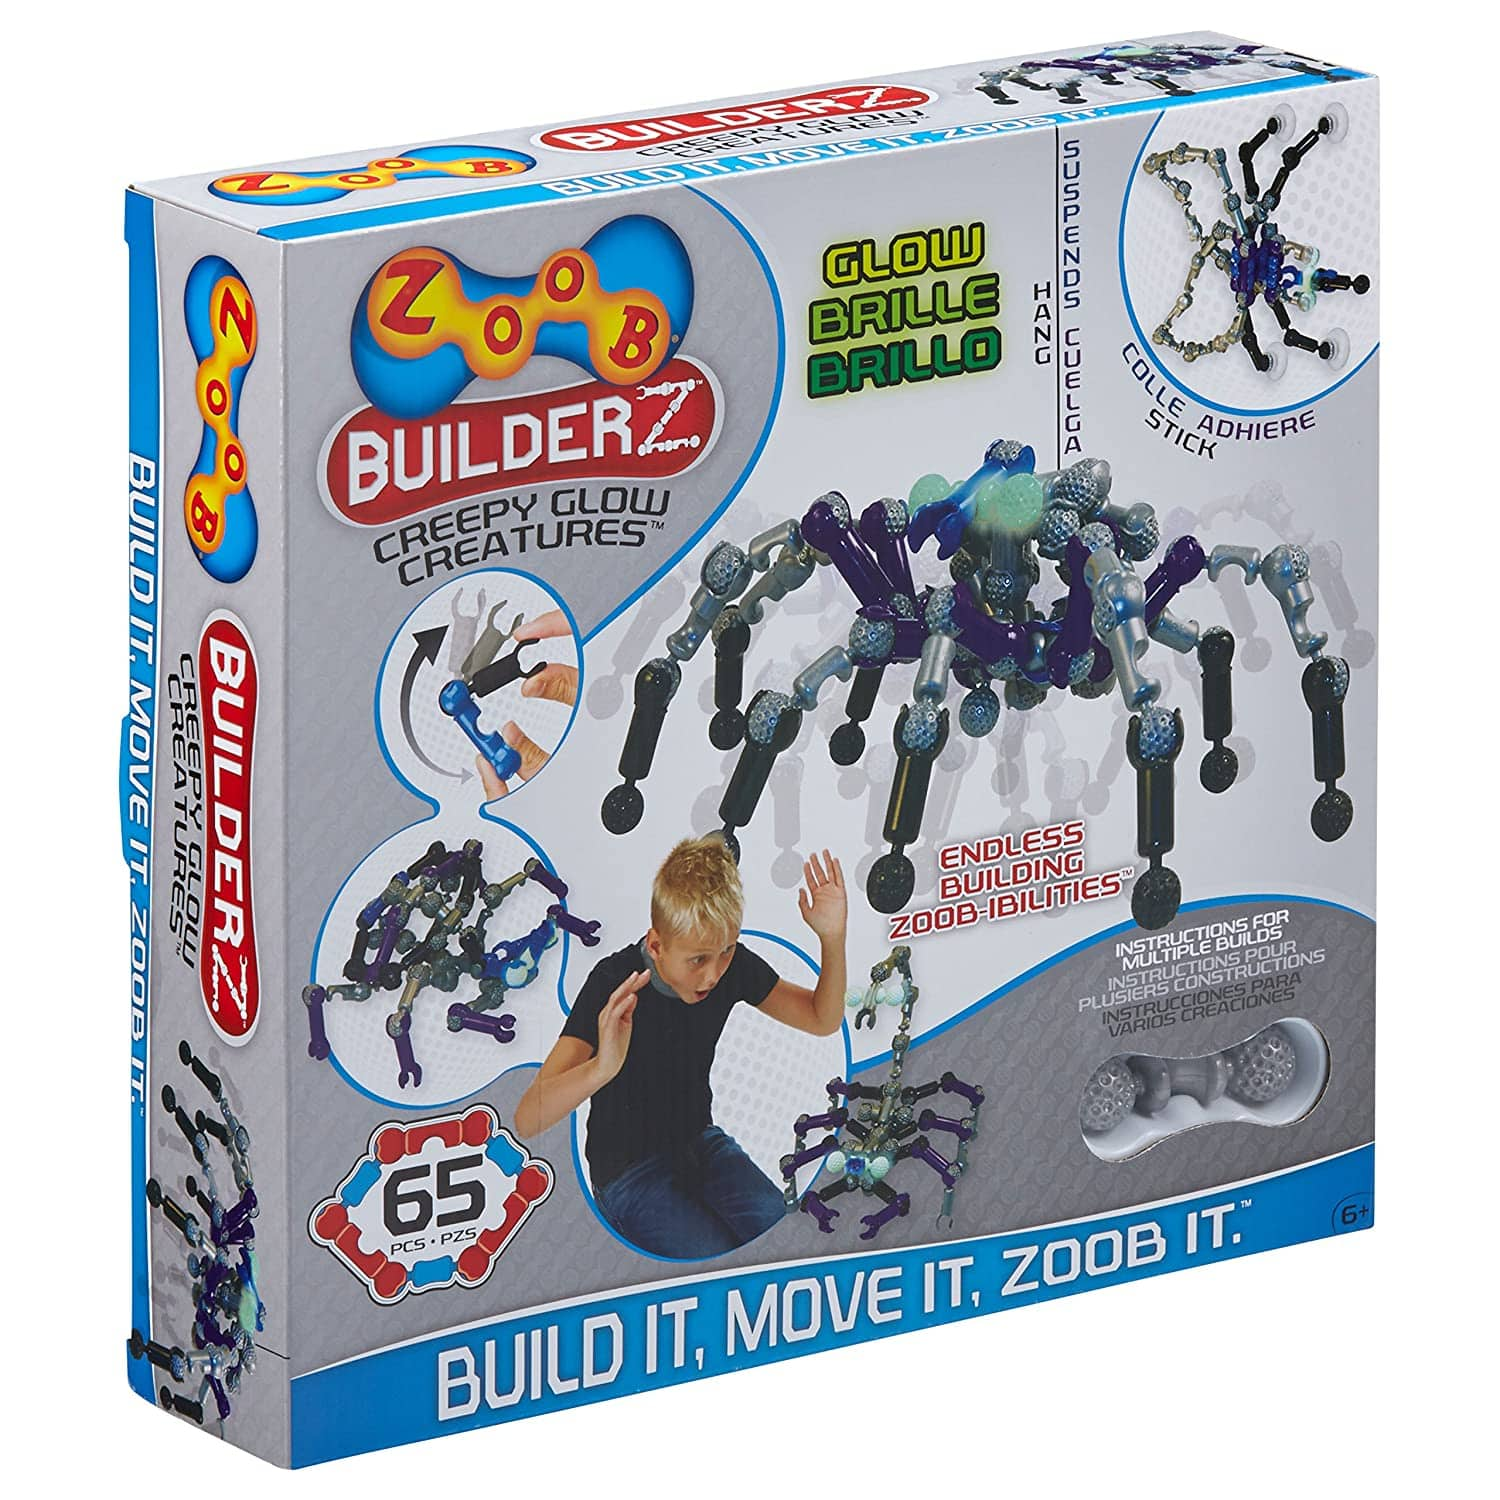 60-Piece Zoob Creepy Glow Creatures Moving Mind-Building Modeling System $8.45 + Free Shipping w/ Prime or on $25+